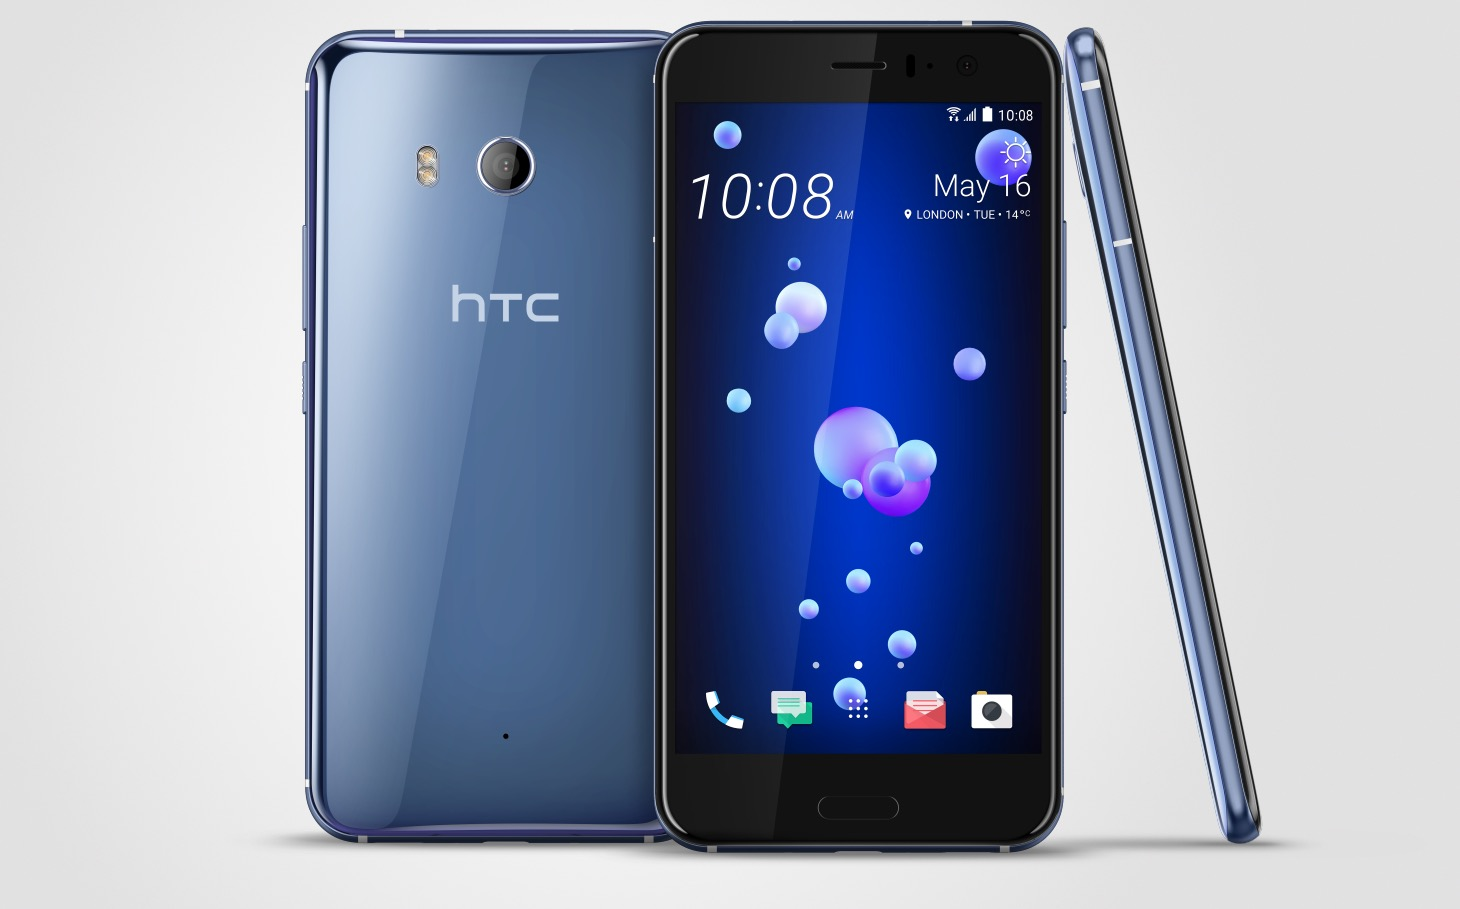 HTC U11smartphone launched with Android 7.0 Nougat; Read Full phone specifications